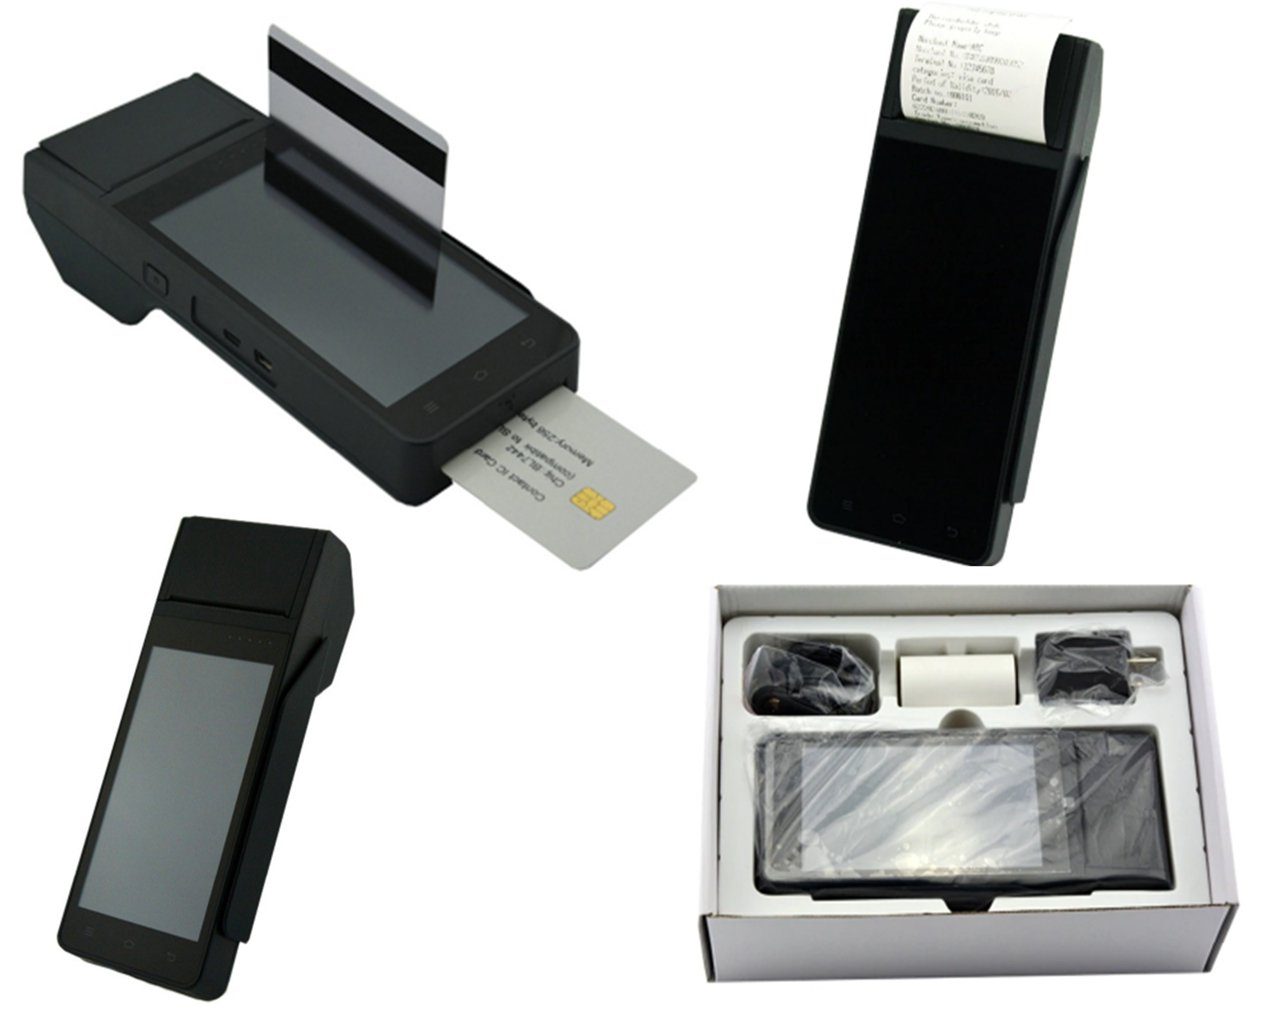 Payment POS Point of Sale Terminal NFC Handheld Printer Barcode Scanner System